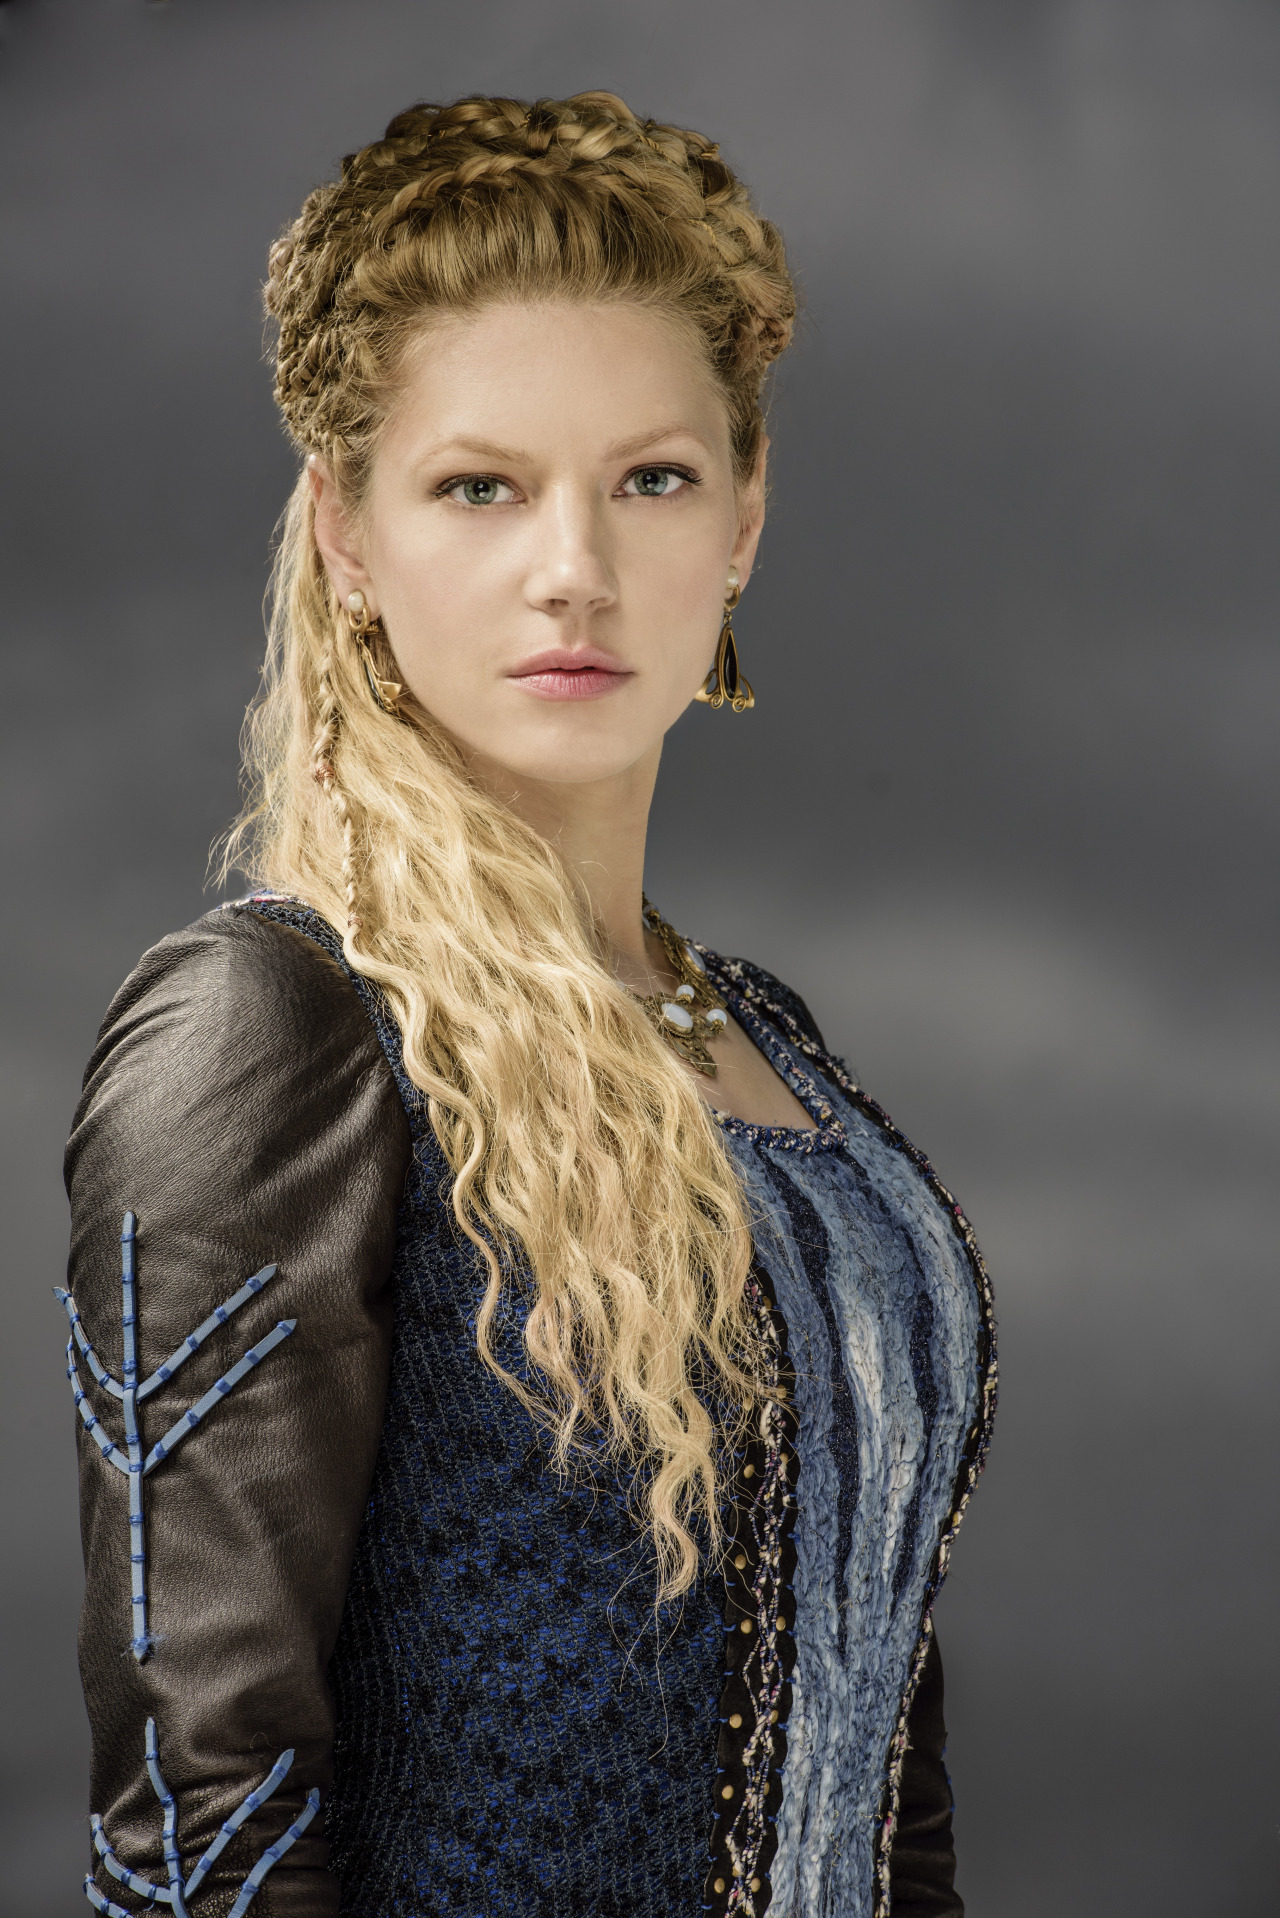 Katheryn Winnick lagertha vikings hairstyles